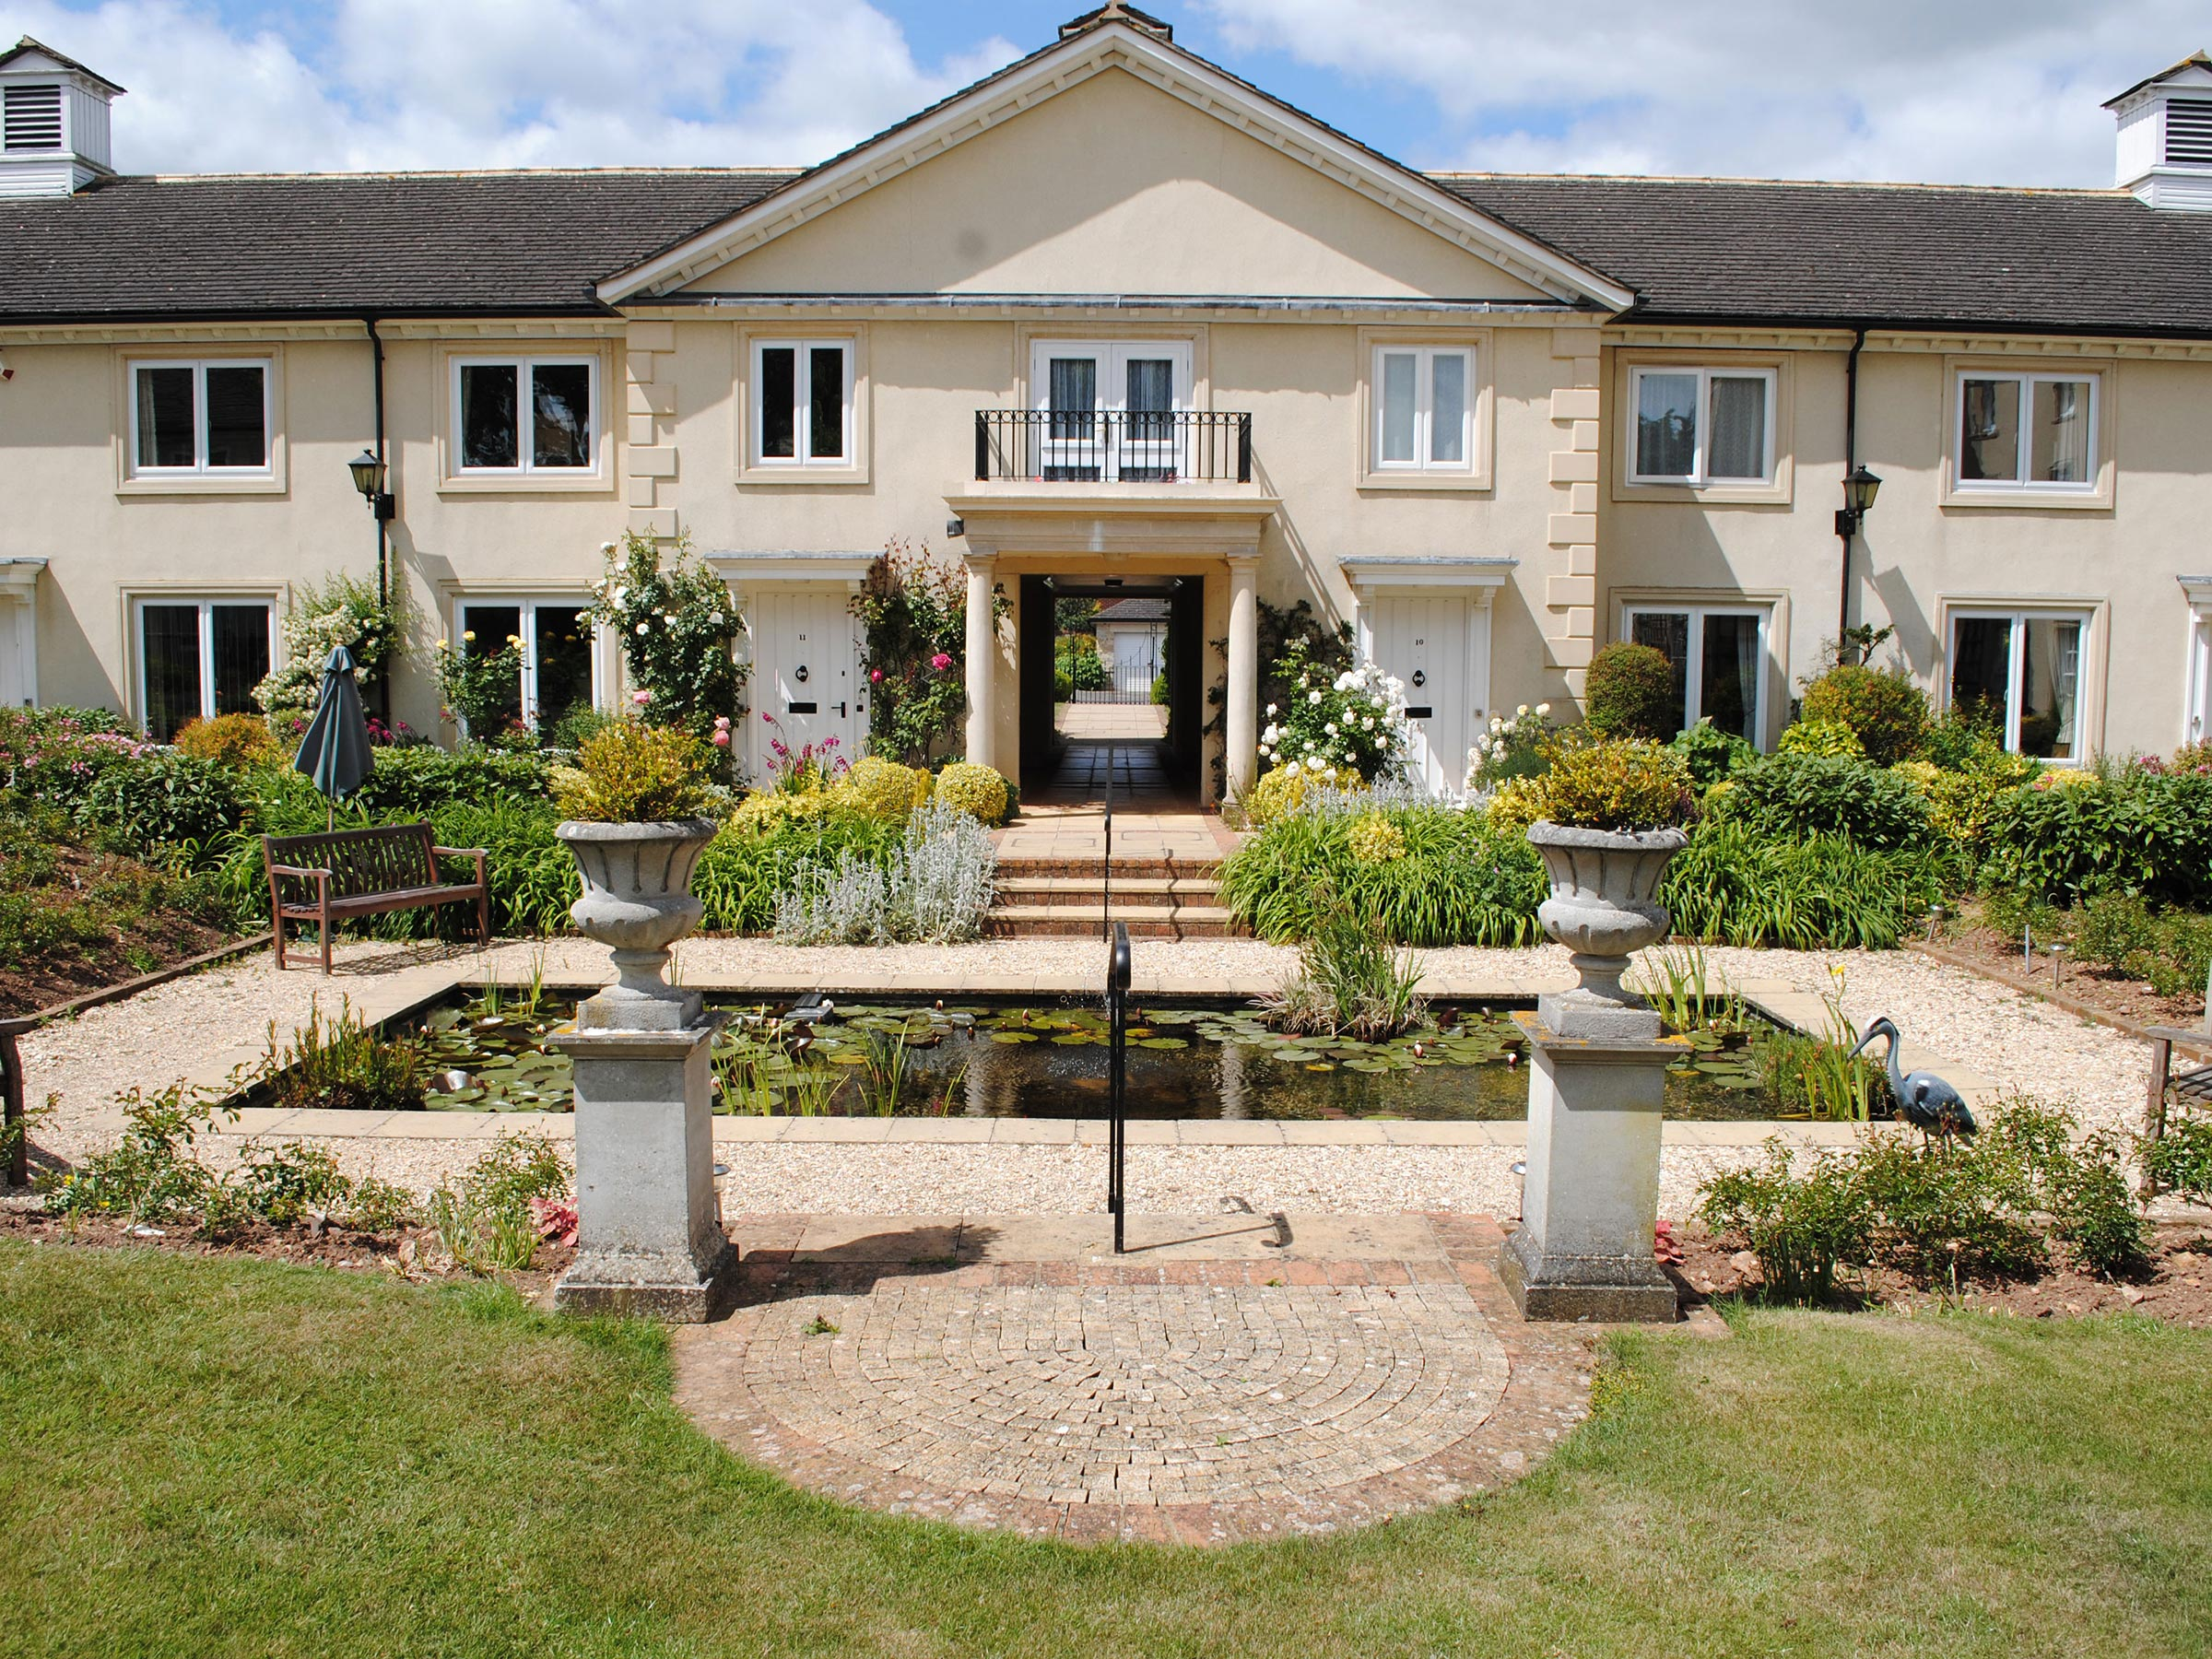 Apartments For Sale In Dorset